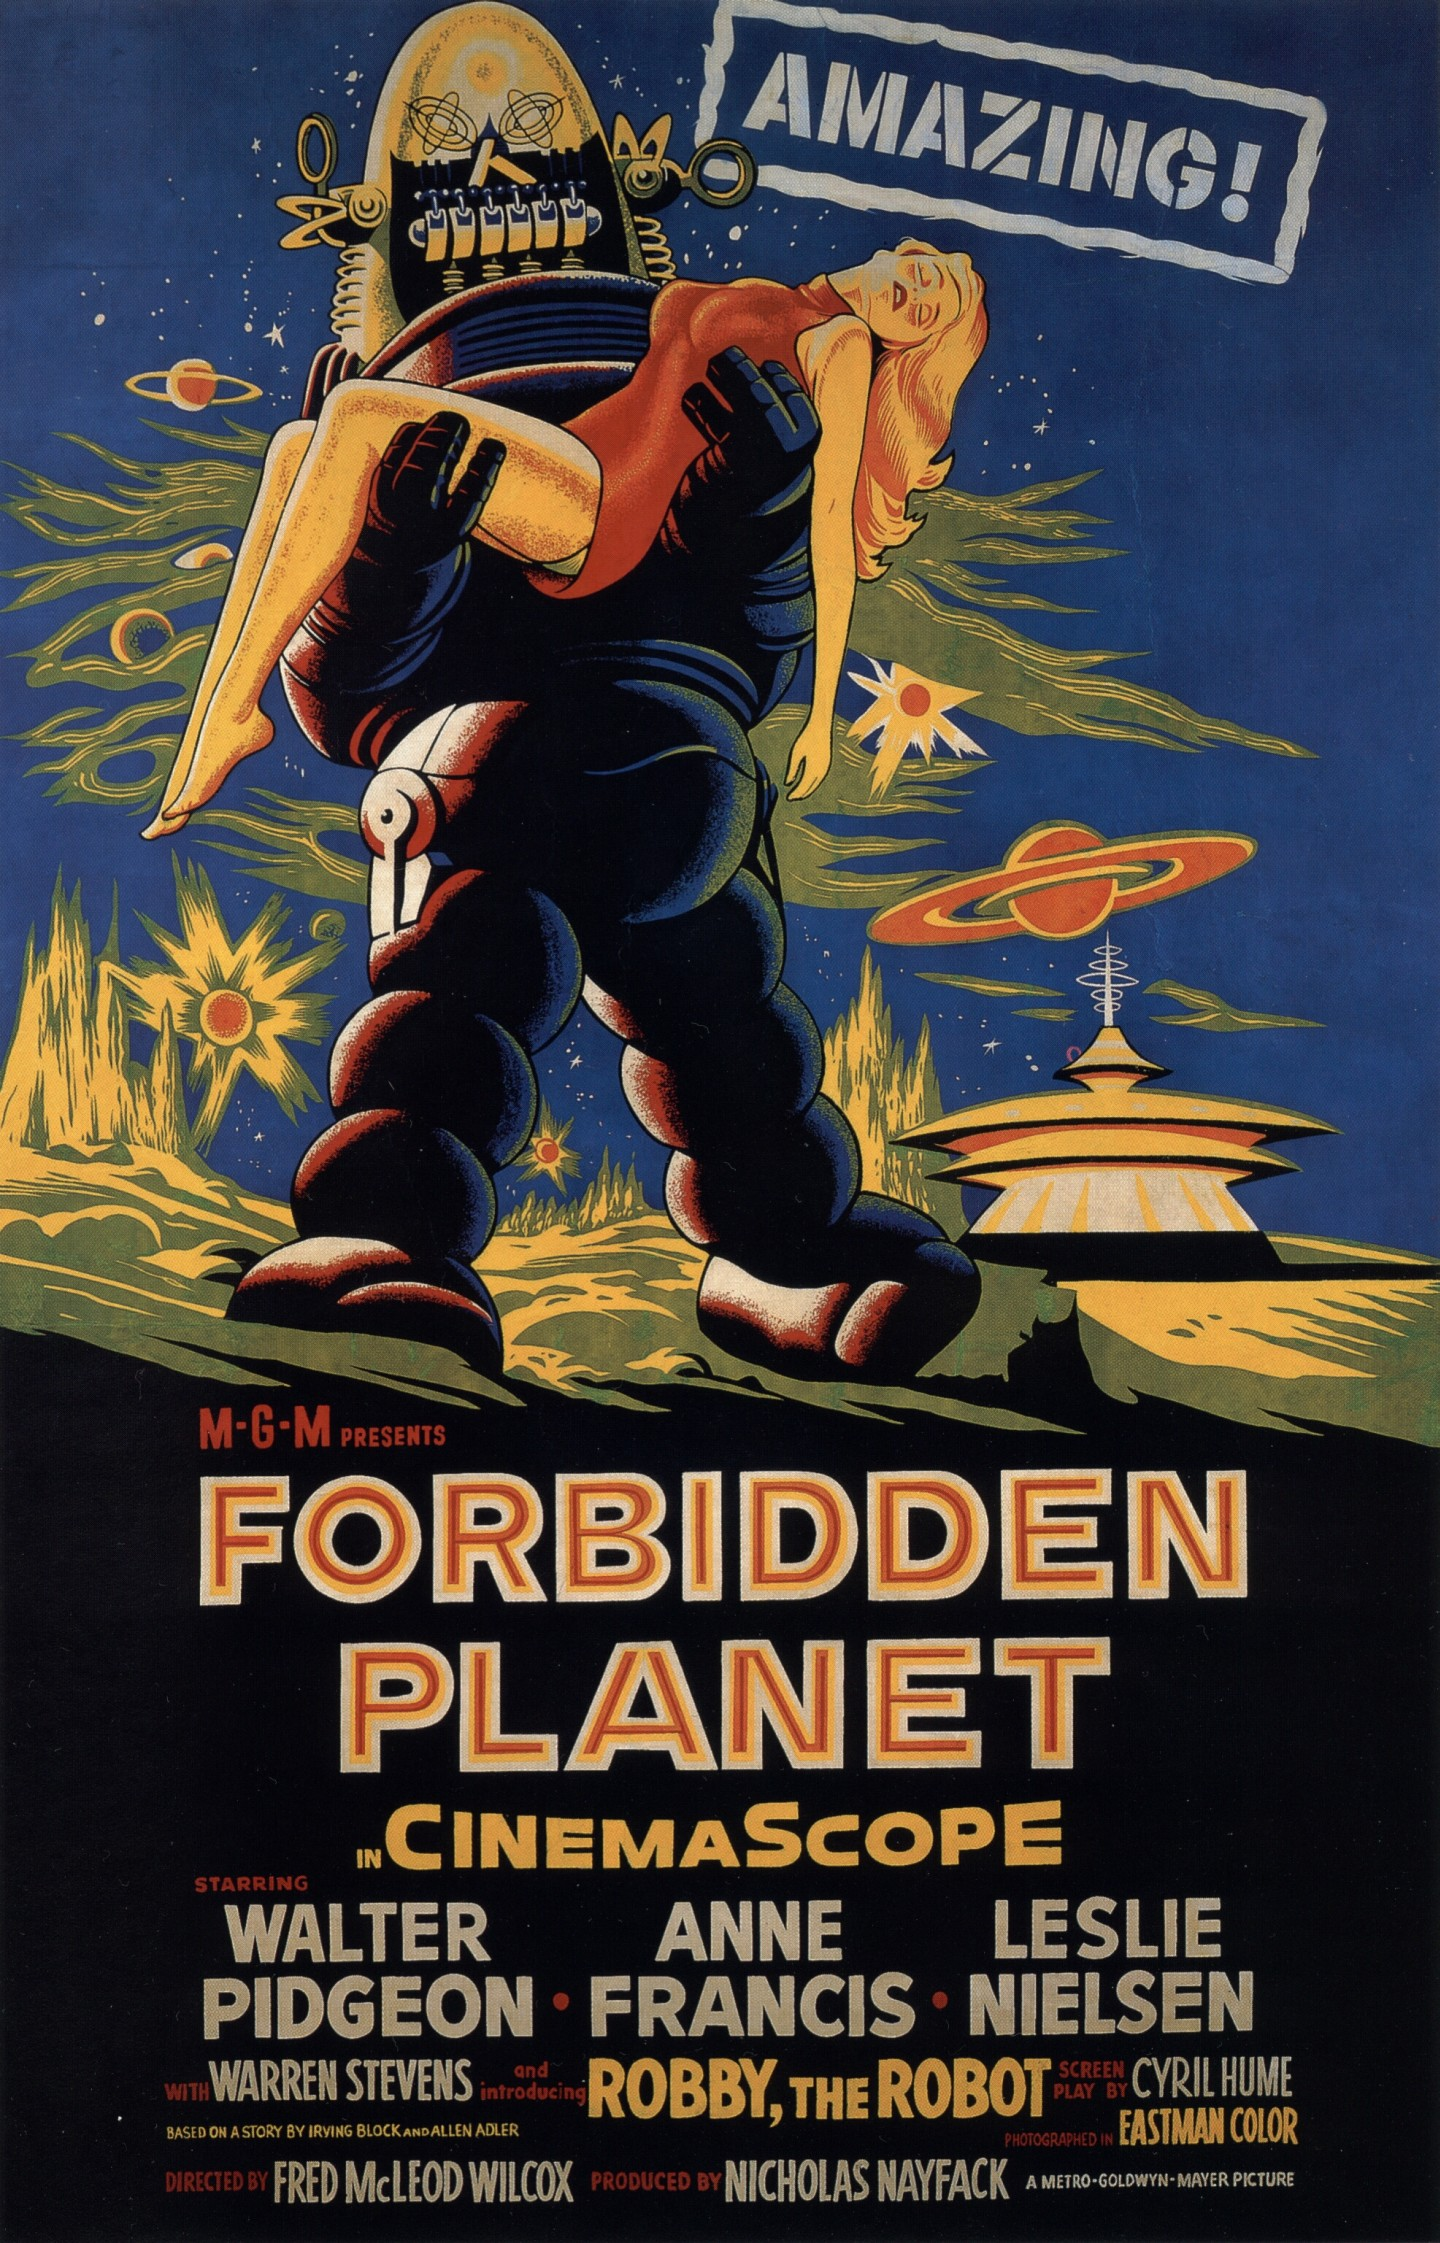 Heather does Forbidden Planet | Mutant Reviewers Forbidden Planet 1956 Poster